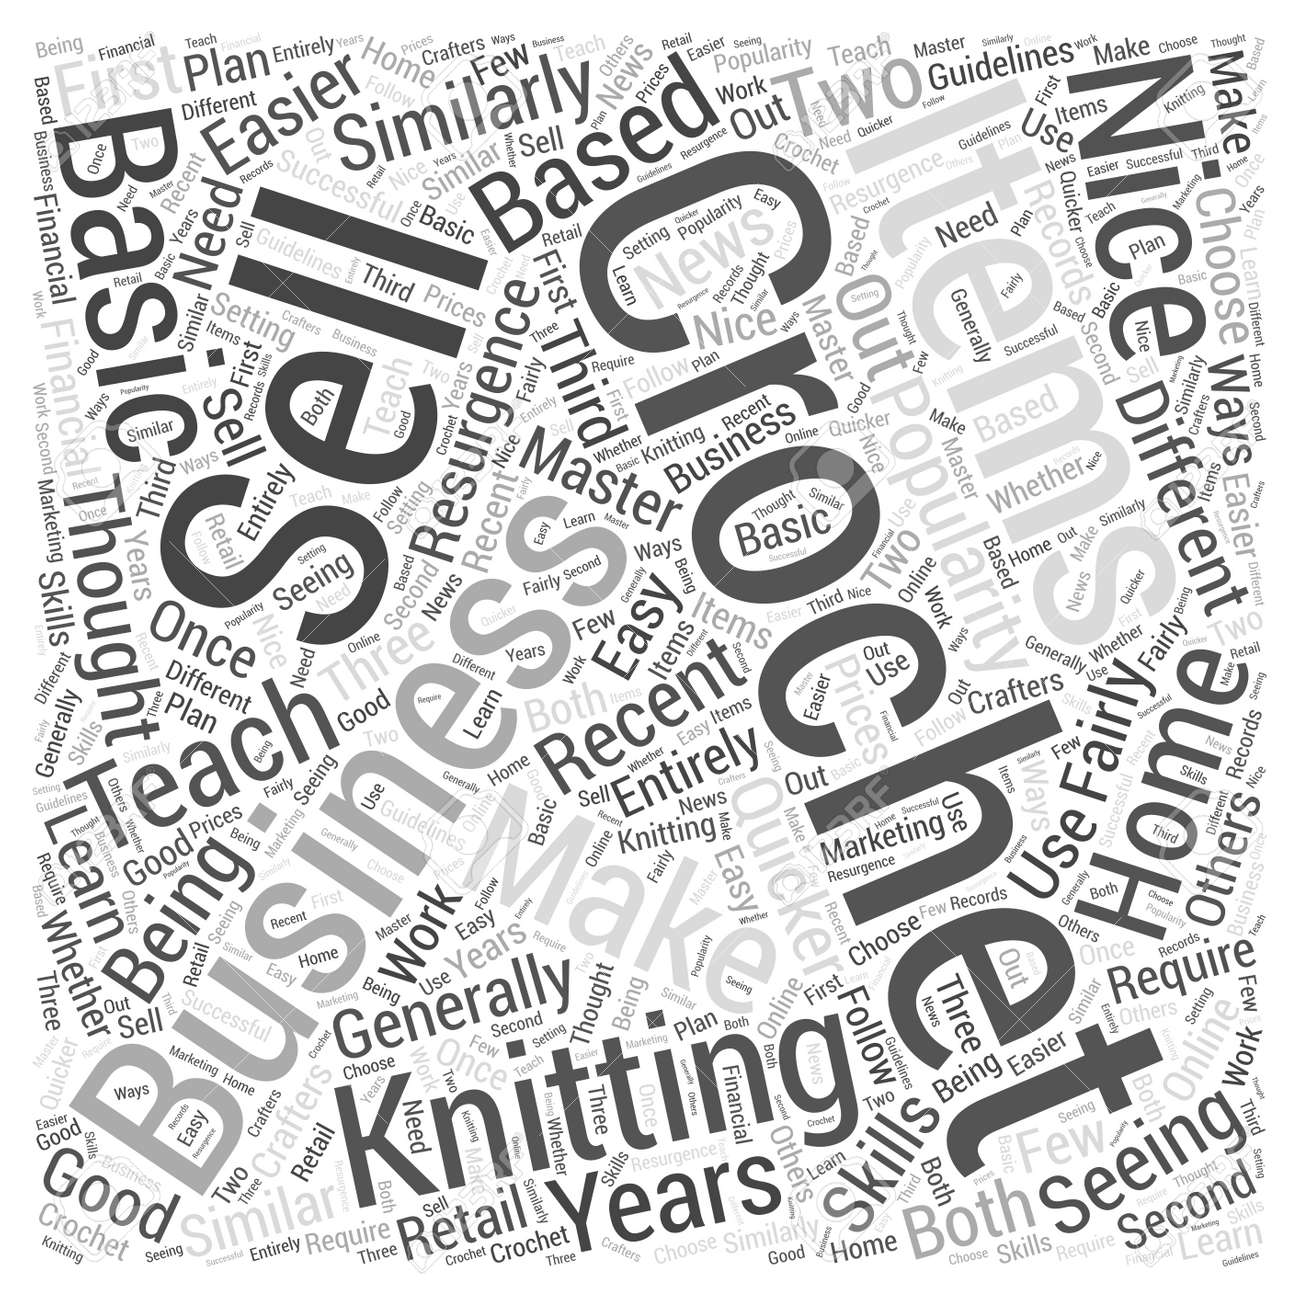 Crochet As A Home Based Business Word Cloud Concept Royalty Free ...